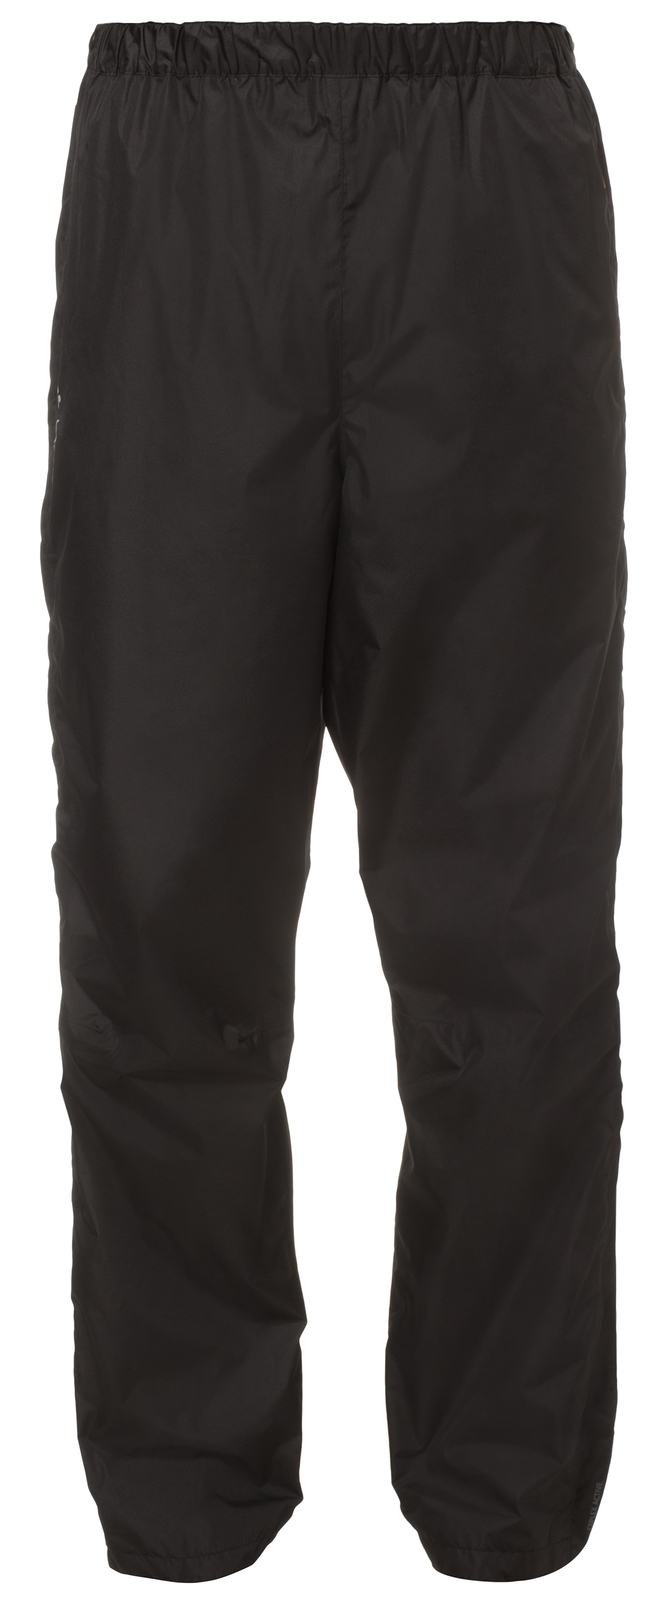 VAUDE Men´s Fluid Full-zip Pants II black Größe M - 2-Rad-Sport Wehrle